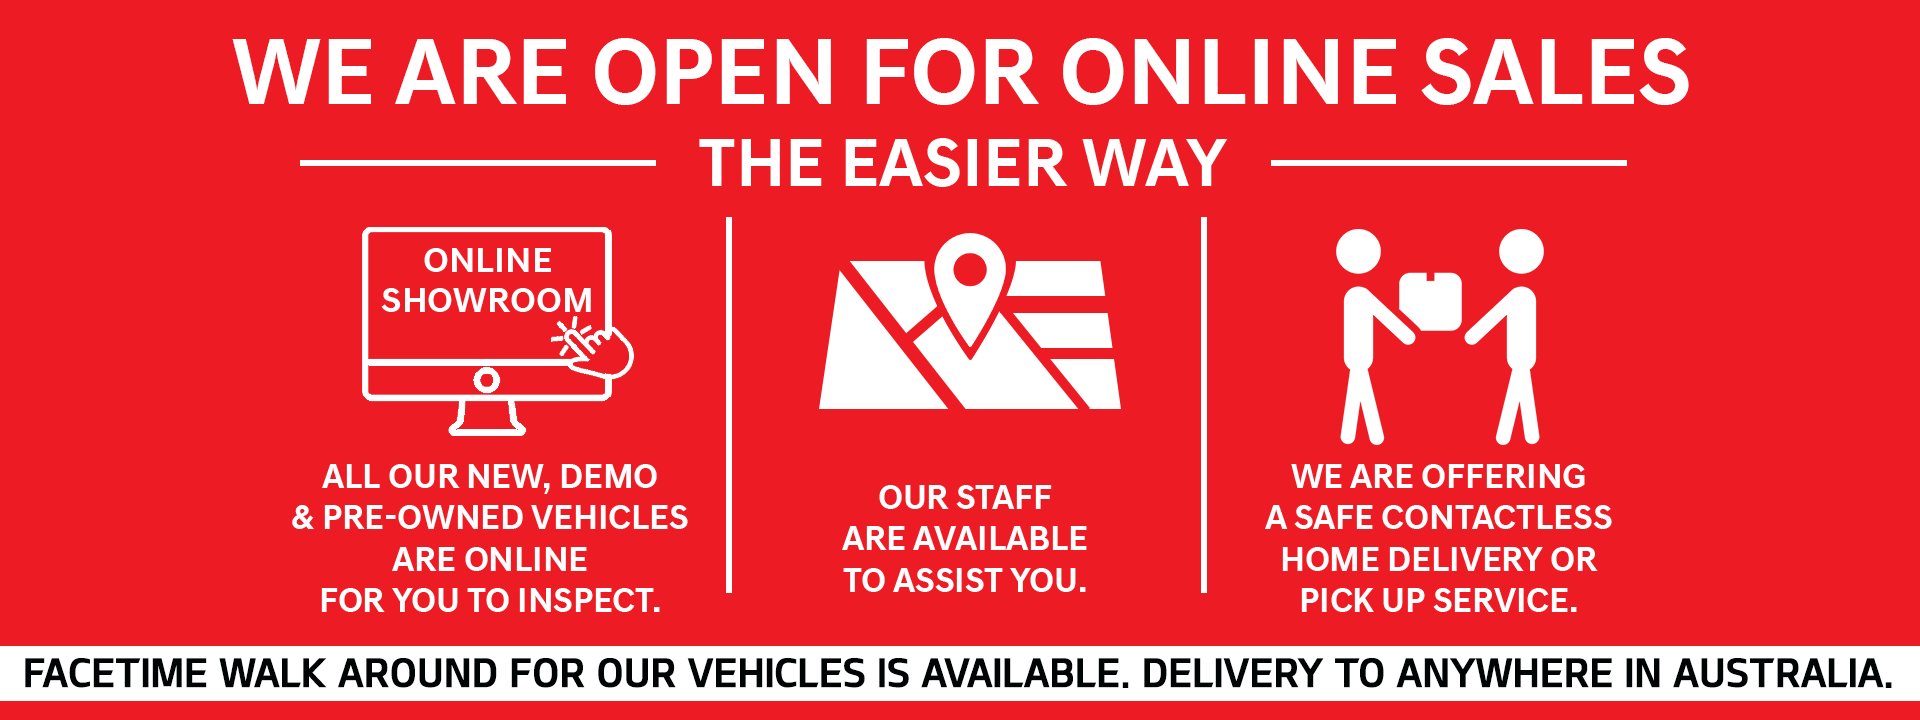 South Morang Hyundai - We are open online